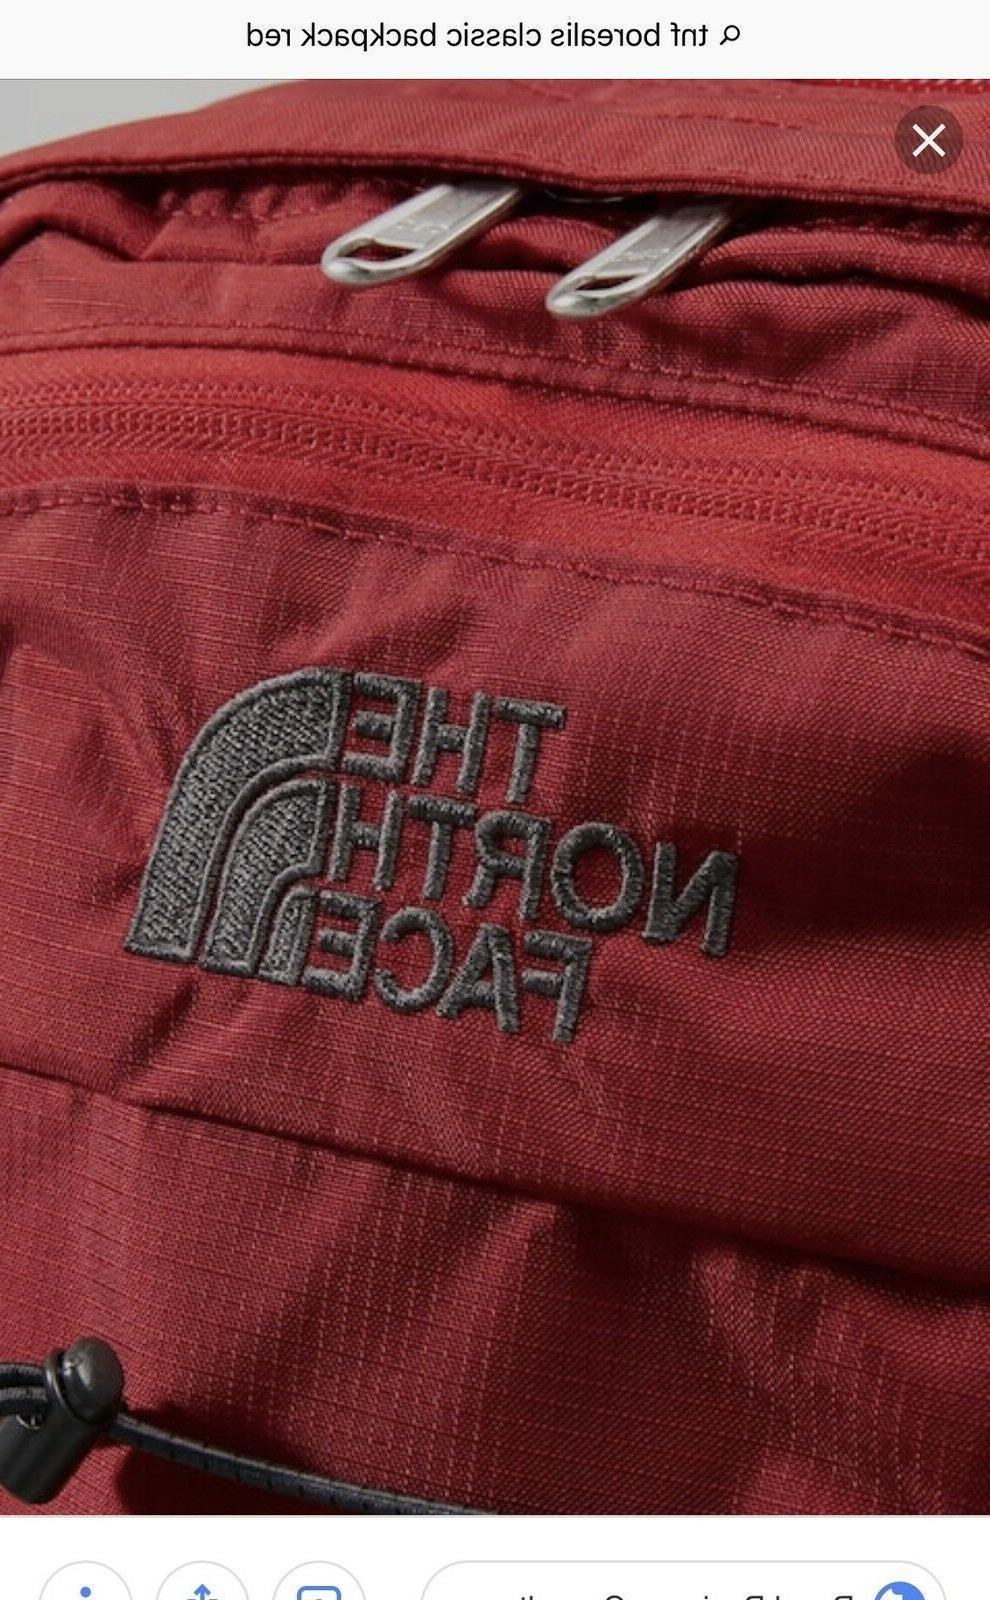 NORTH FACE BEST - BNWT! FREE